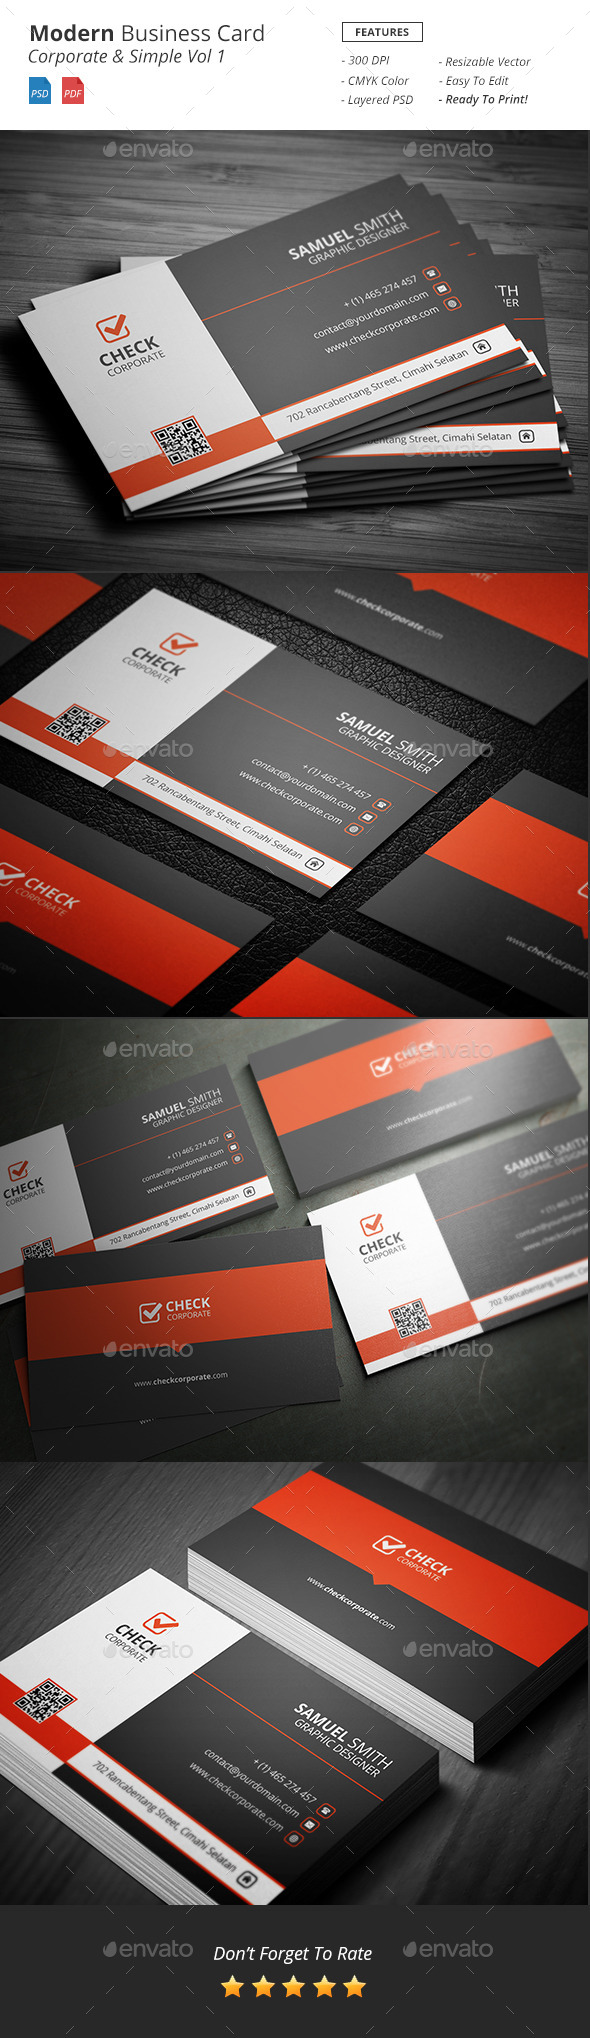 Modern - Corporate Business Card Vol 1 - Corporate Business Cards